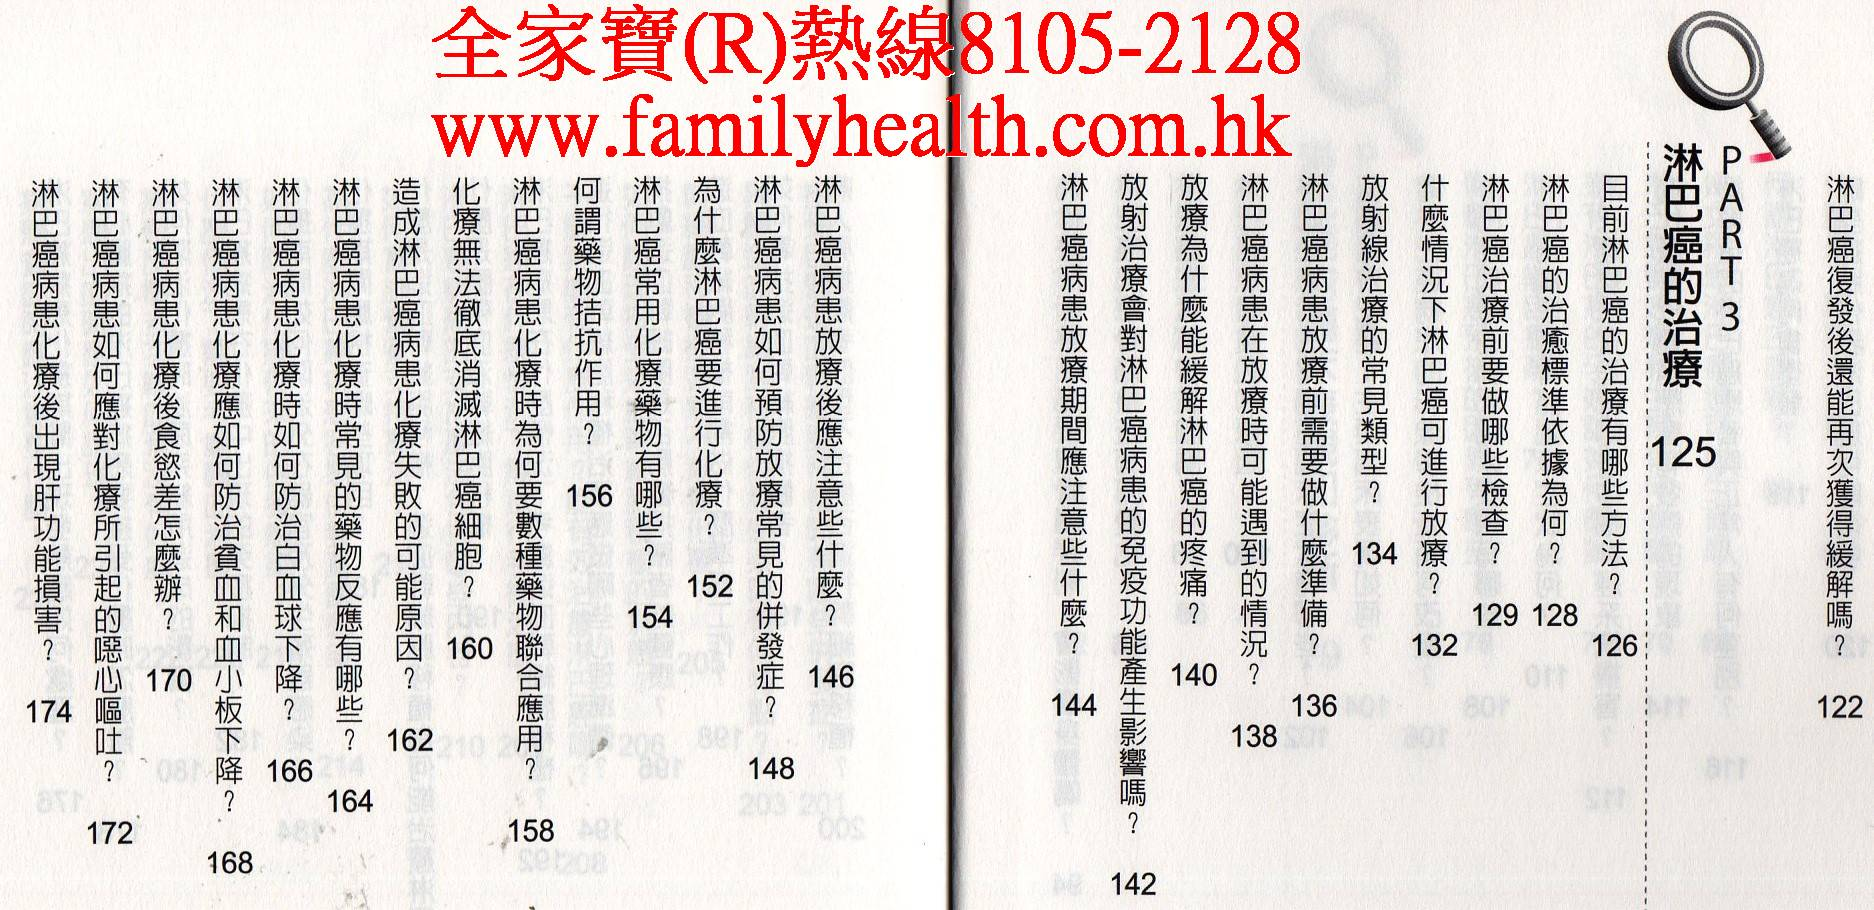 http://www.familyhealth.com.hk/files/full/1165_3.jpg